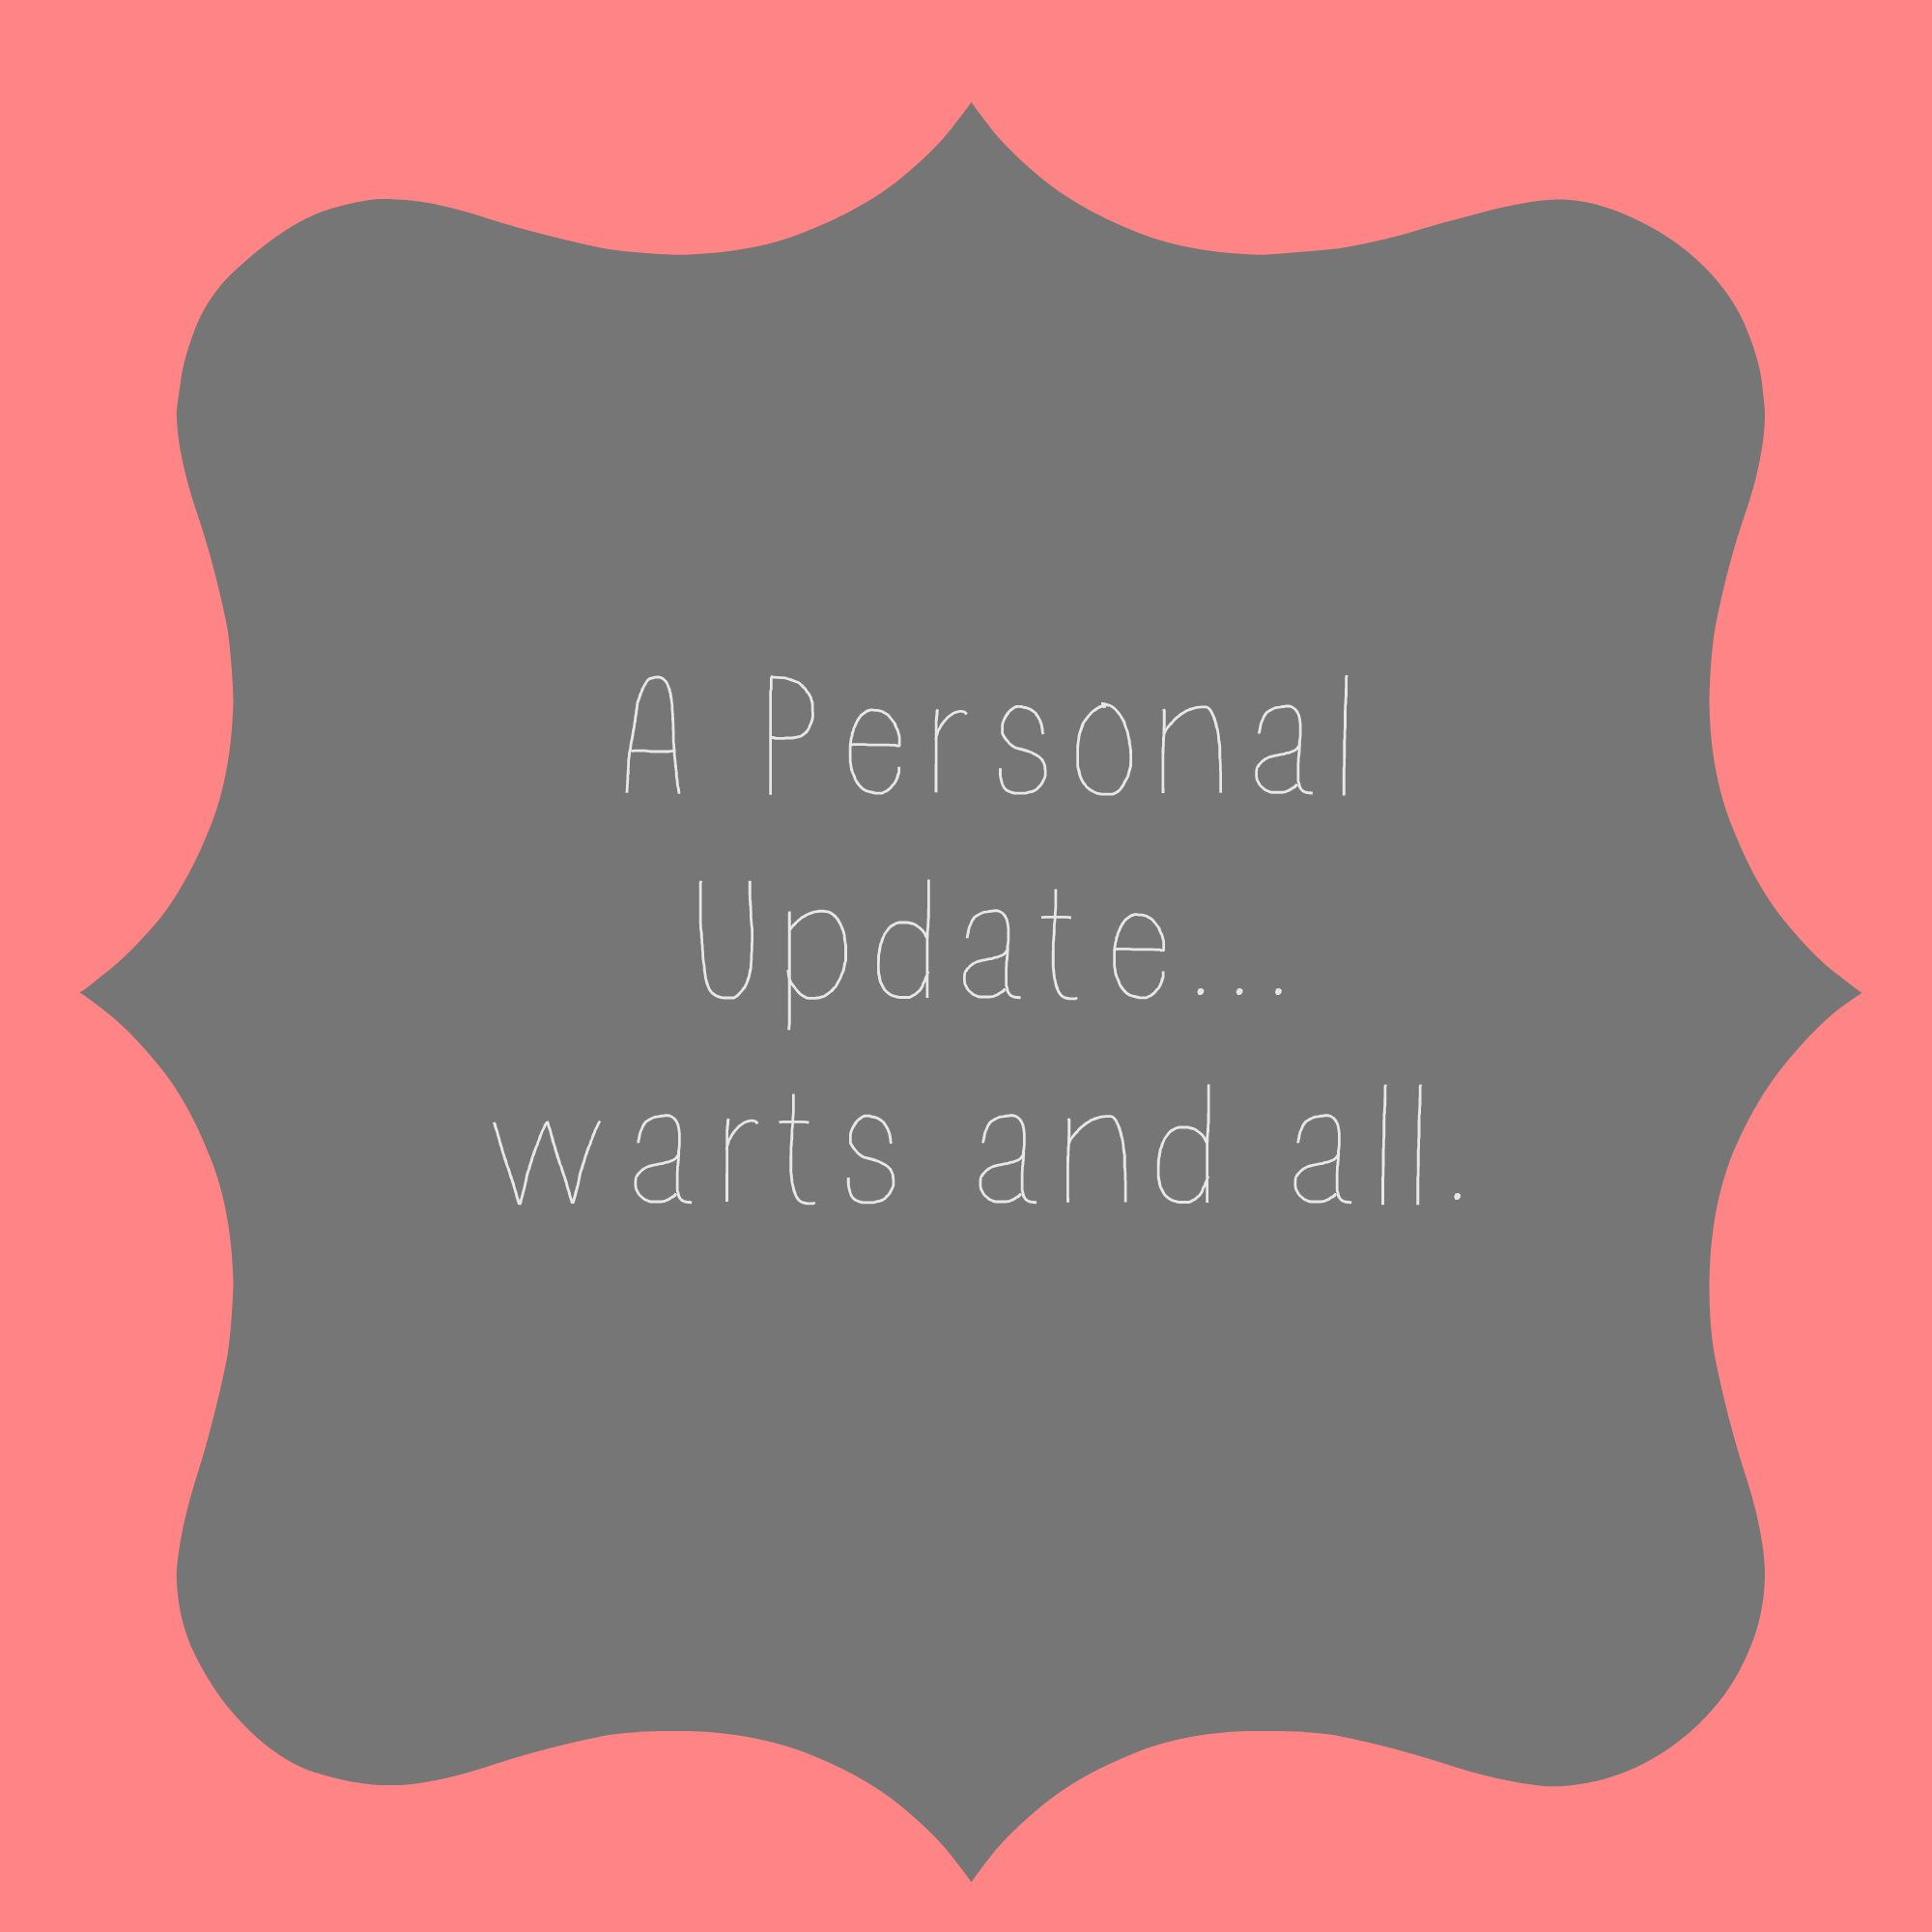 A Personal Update…warts and all.